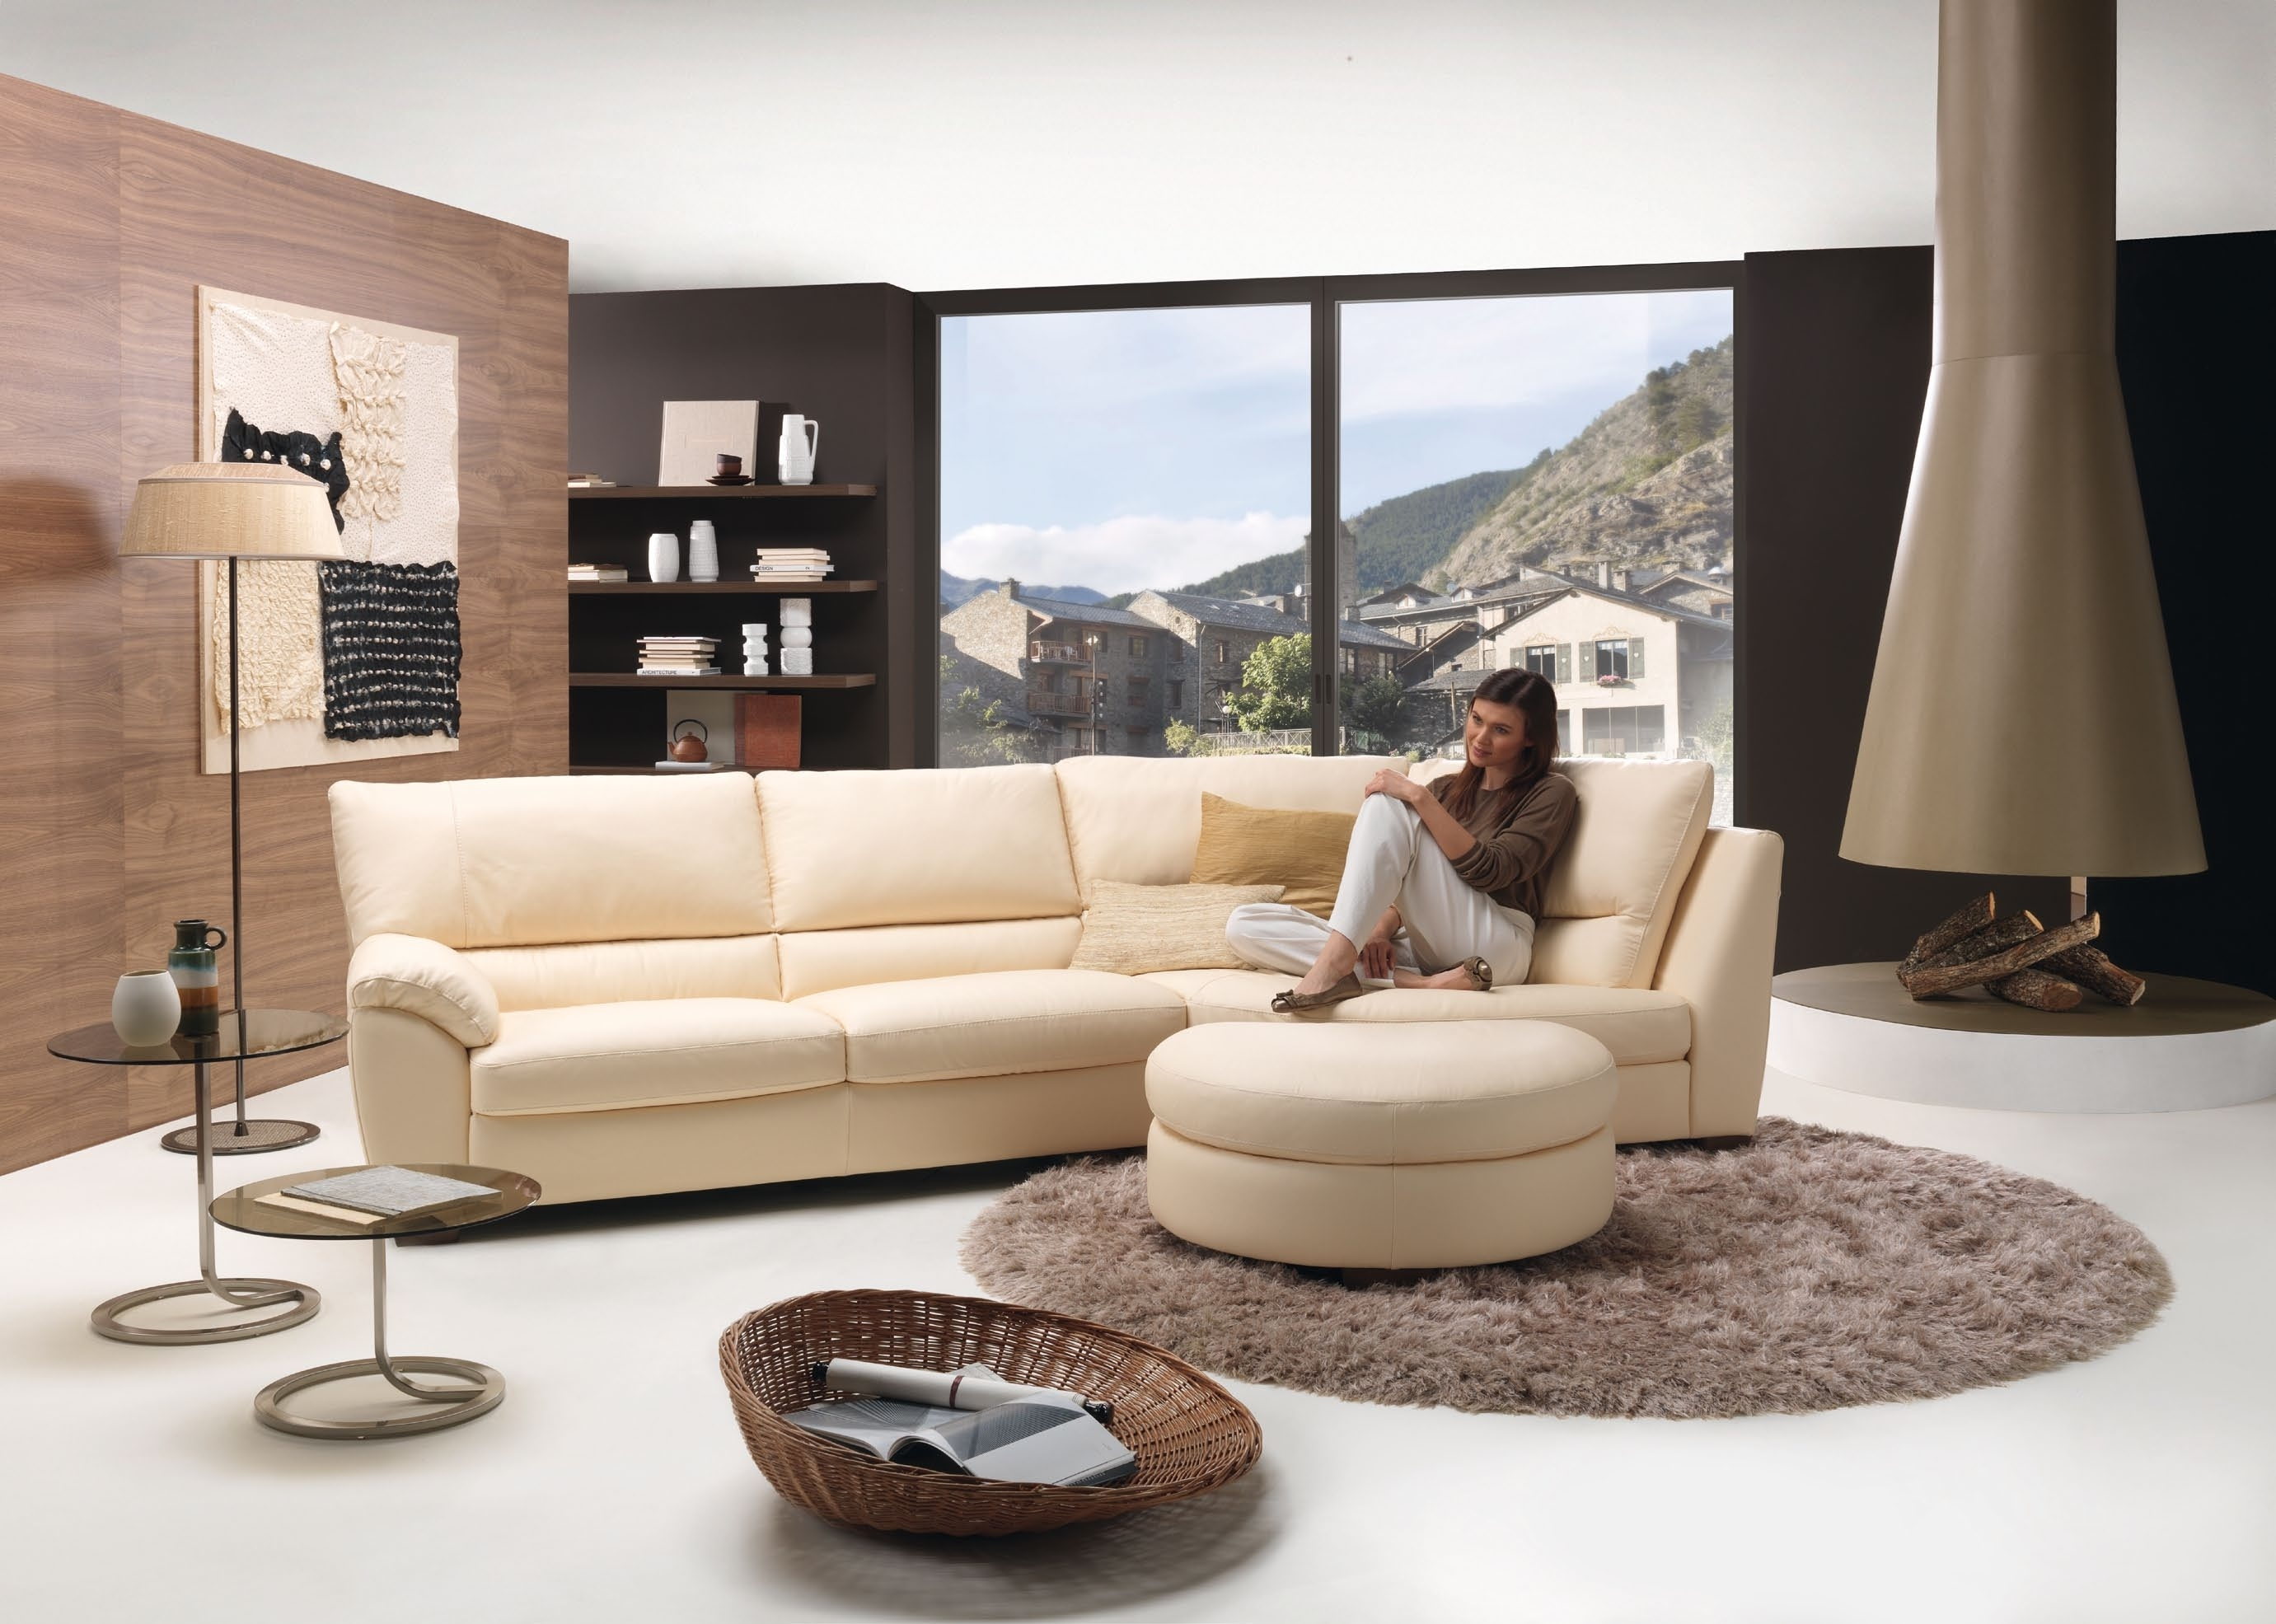 50 Images Of Astounding Living Room Furniture Round Sofas Hausratversicherungkosten